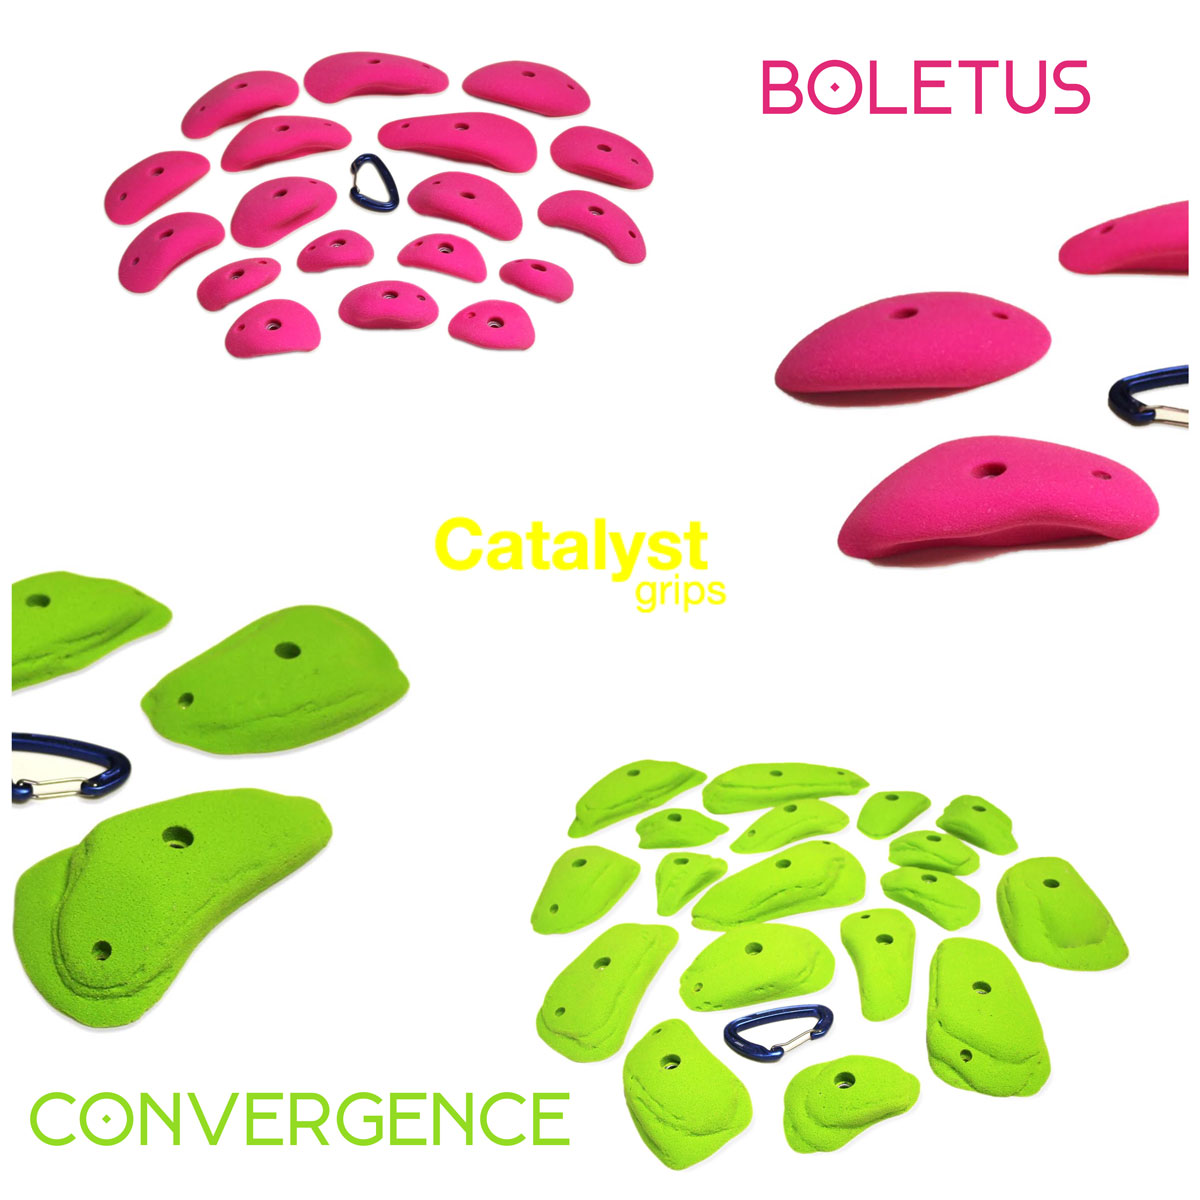 Catalyst Grips' new Convergence and Boletus series